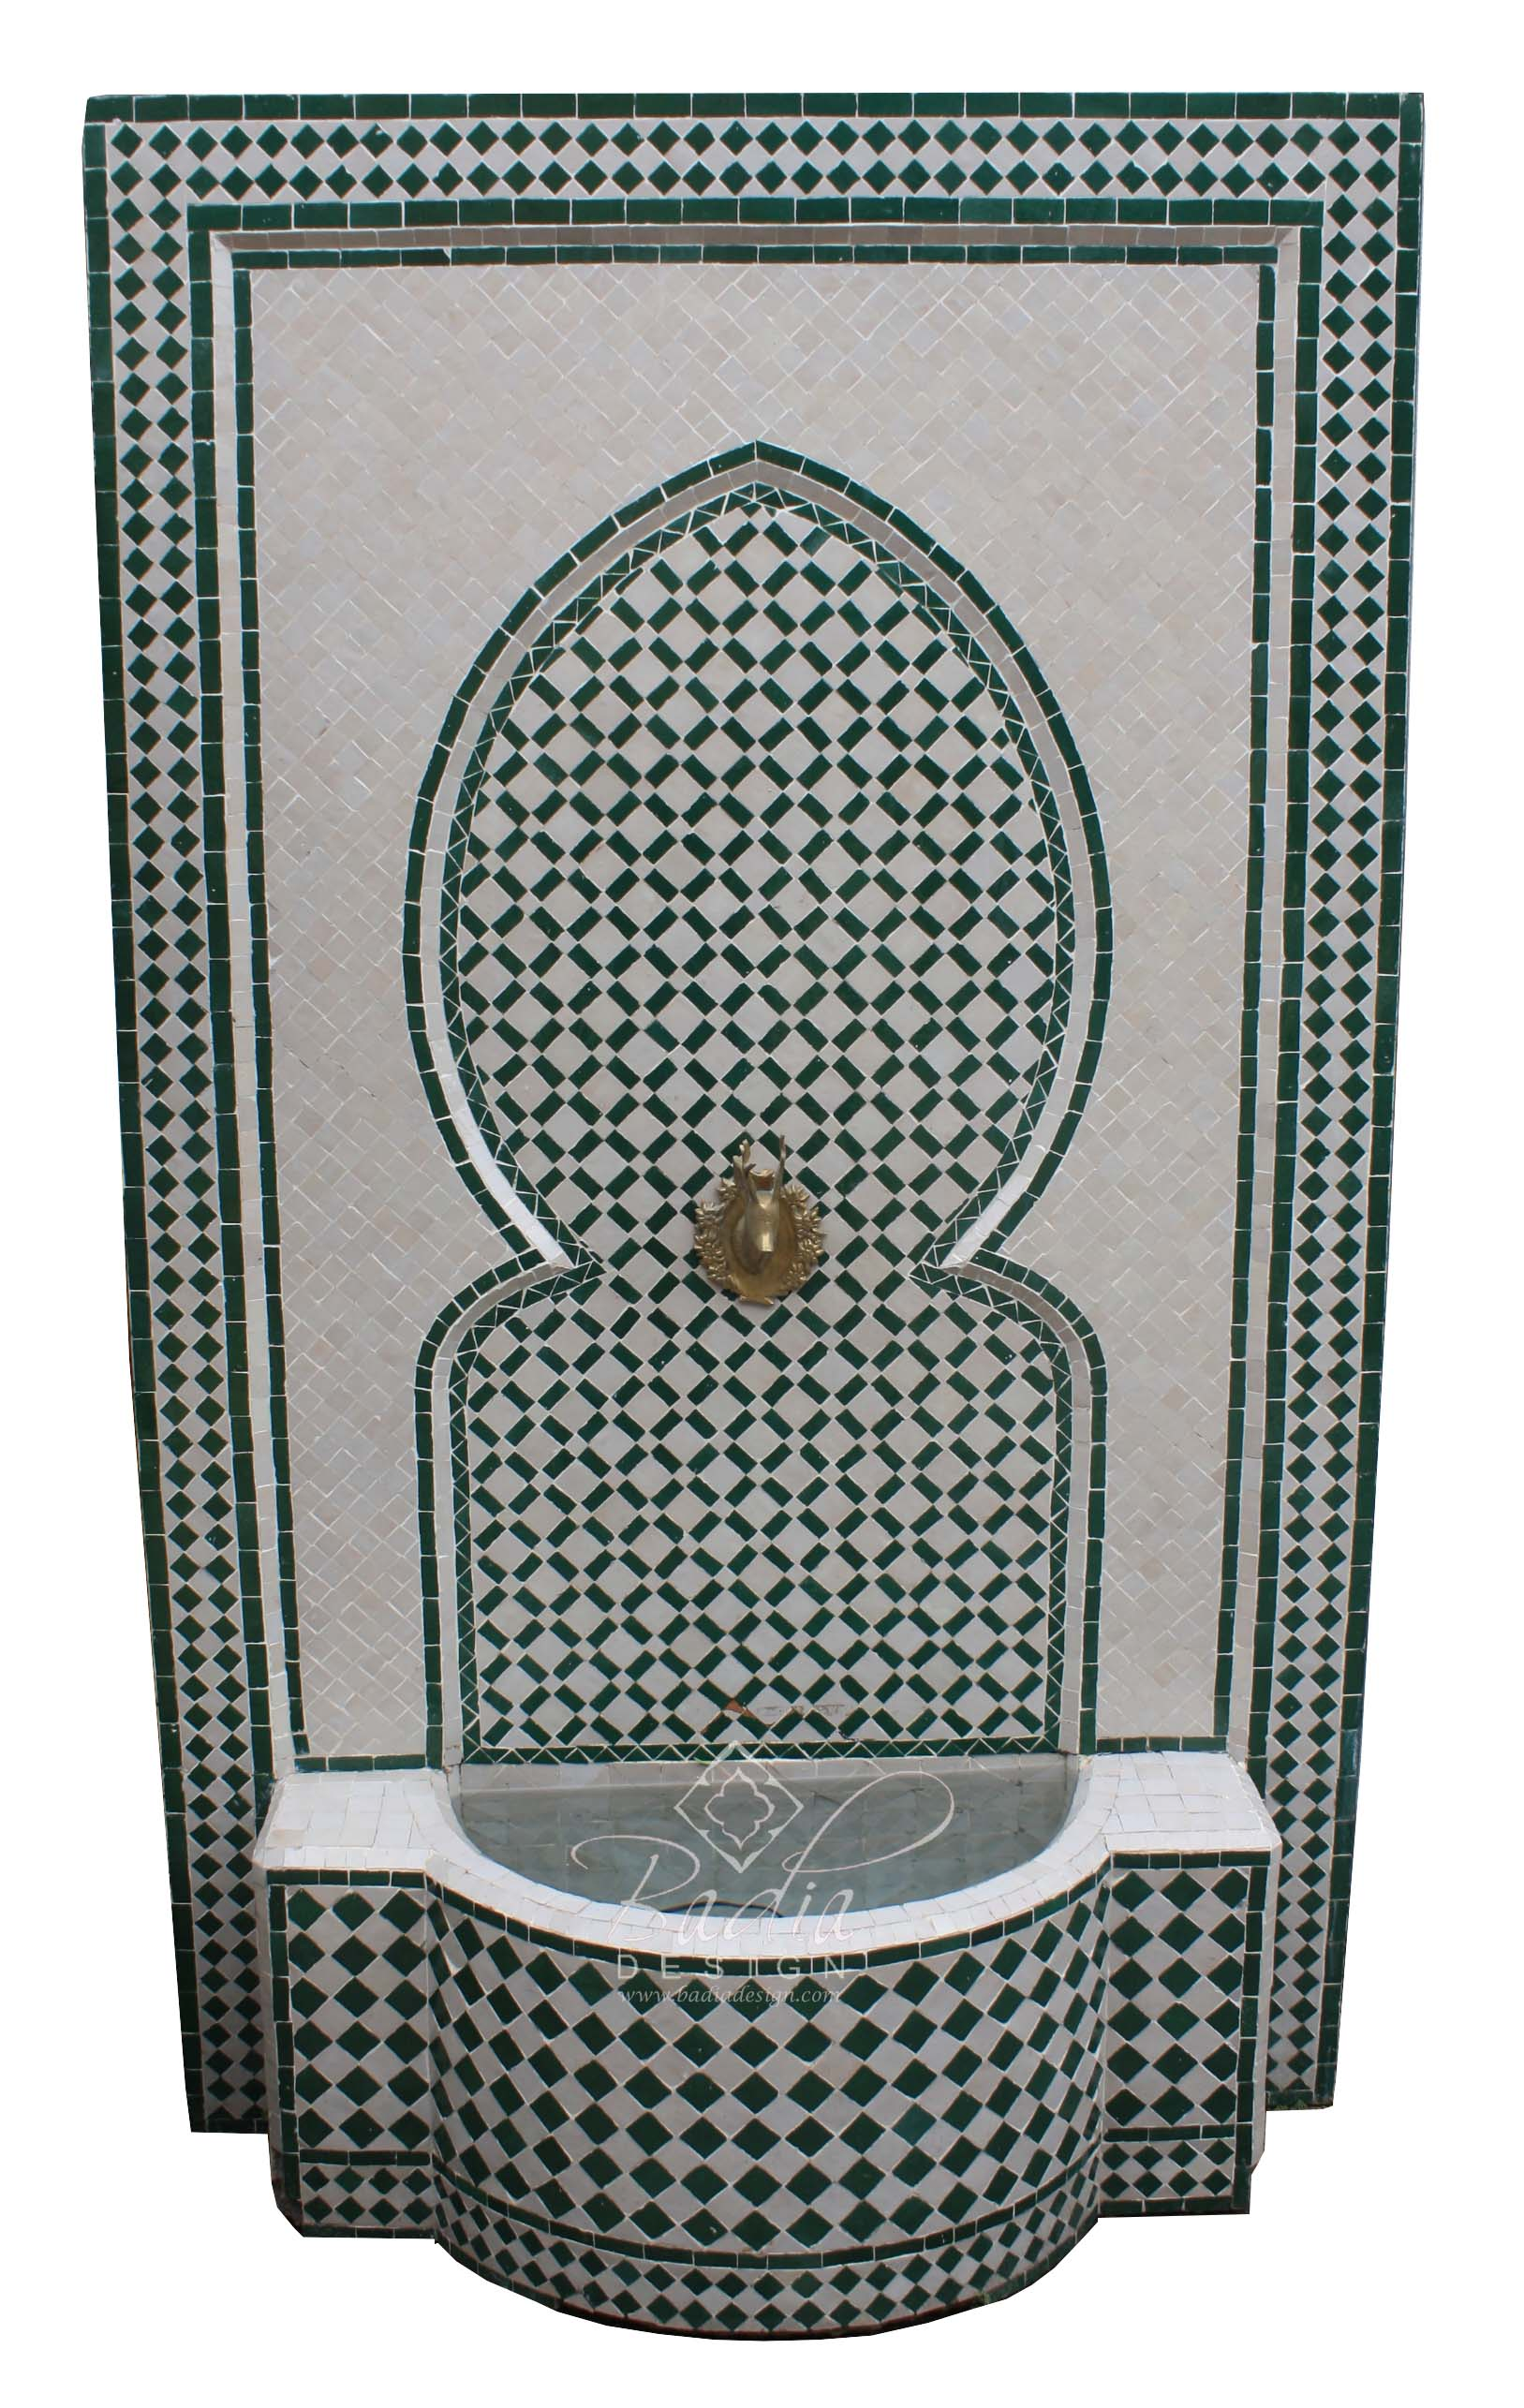 large-moroccan-mosaic-tile-water-fountain-mf668.jpg